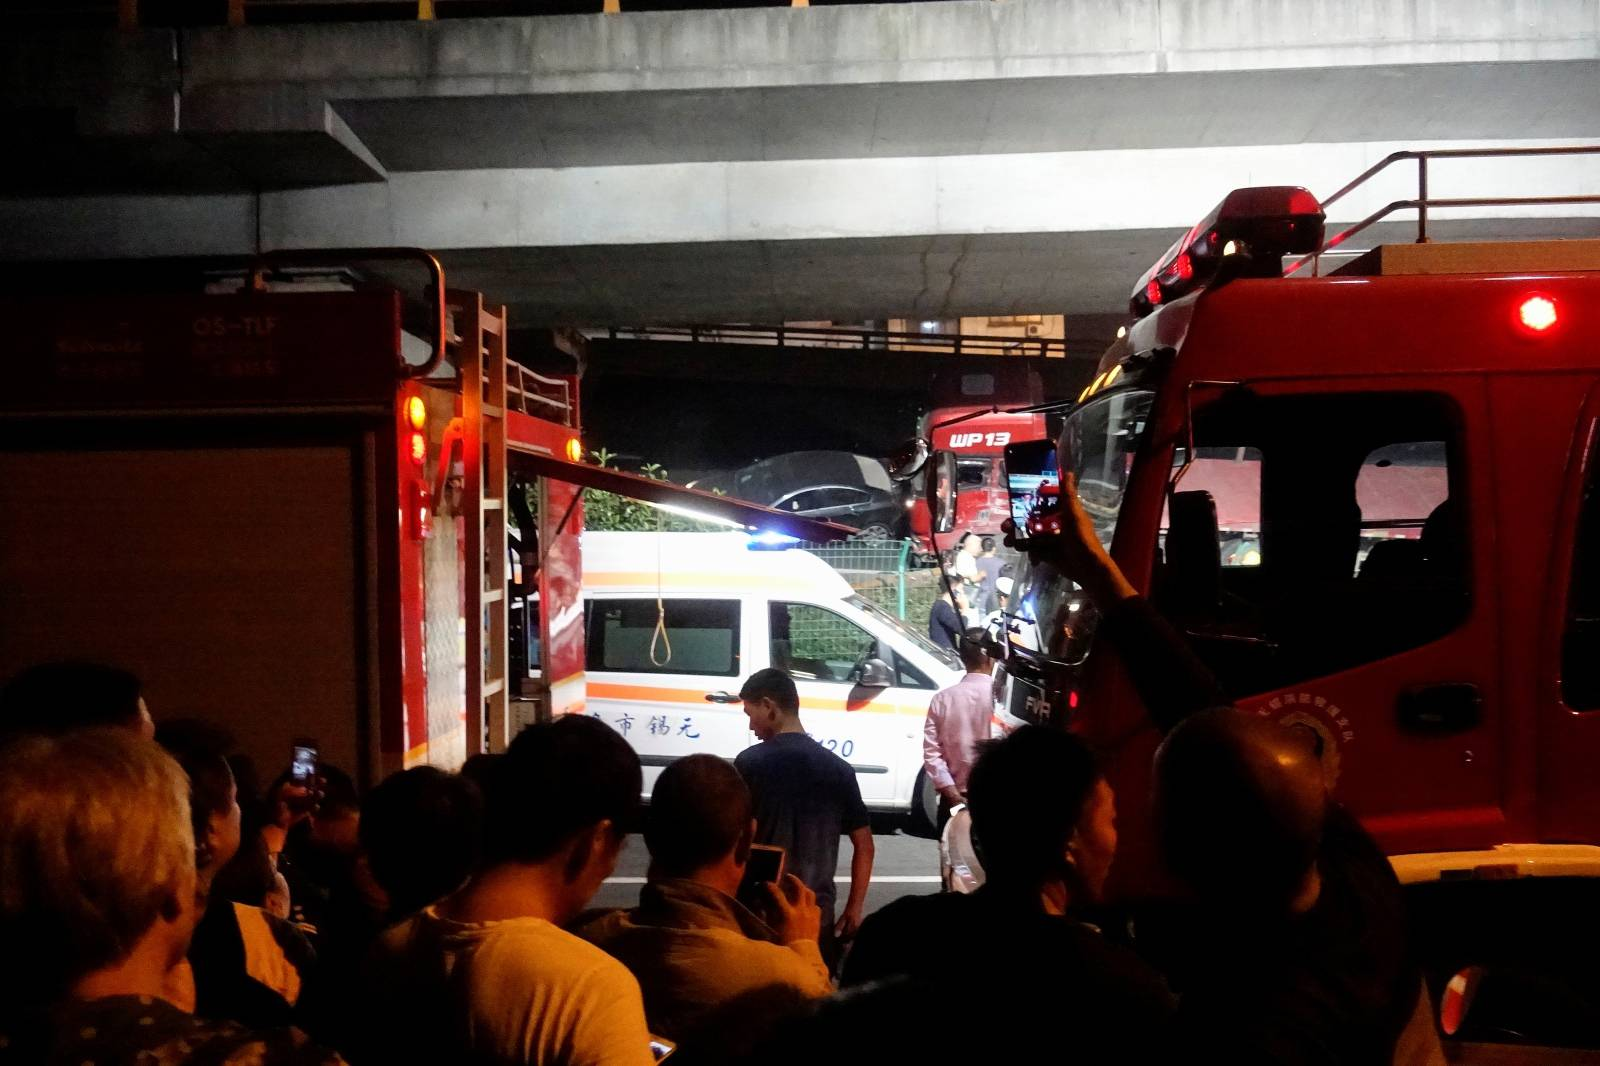 Rescue vehicles and ambulance are seen at the site after a part of highway overpass collapsed in Wuxi, Jiangsu